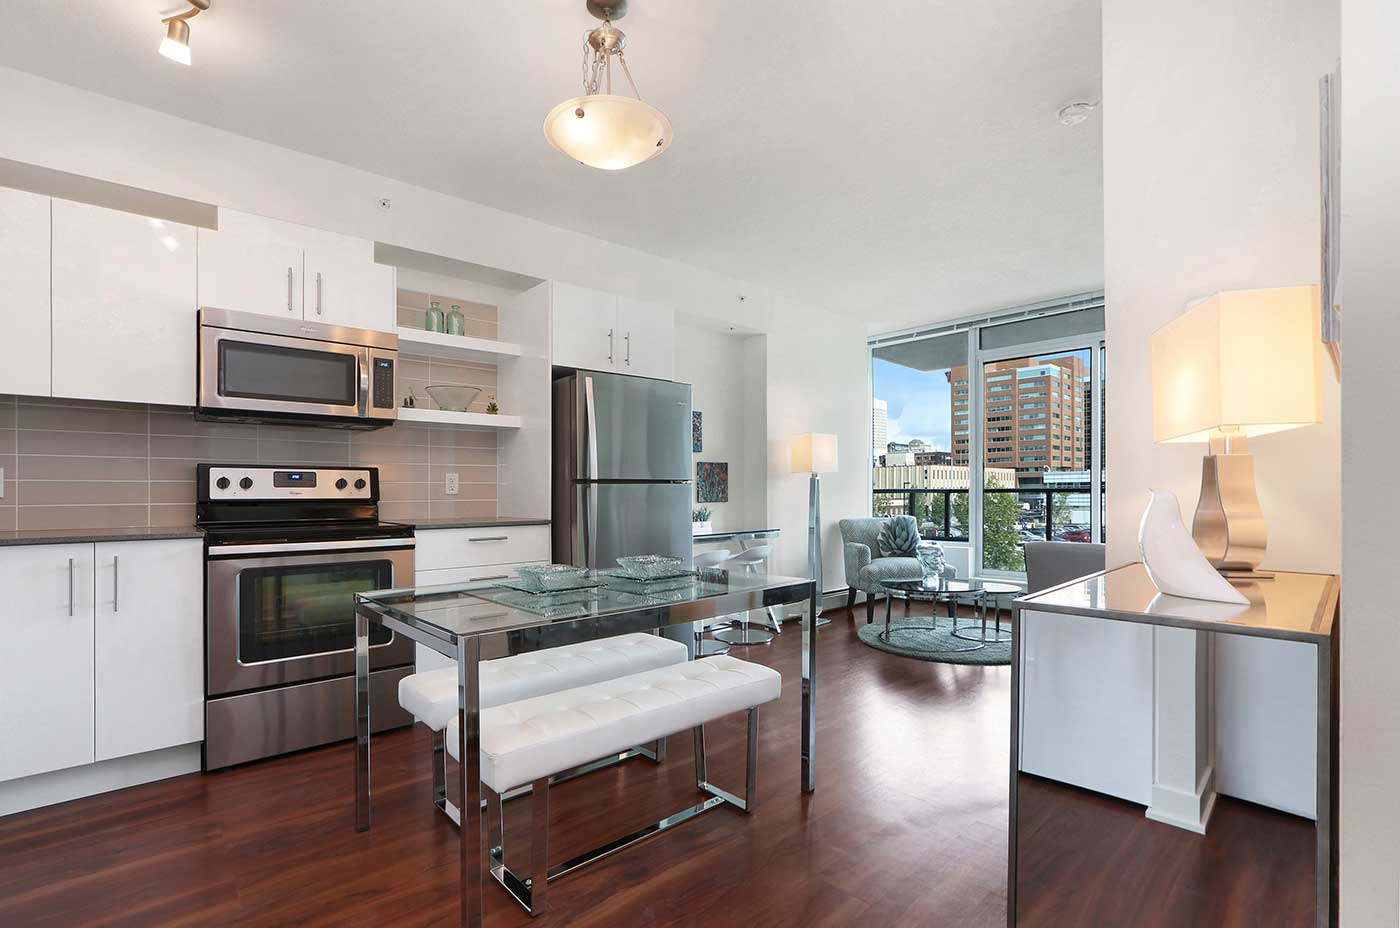 1215 Rental Apartments - One bedroom L2 Kitchen view